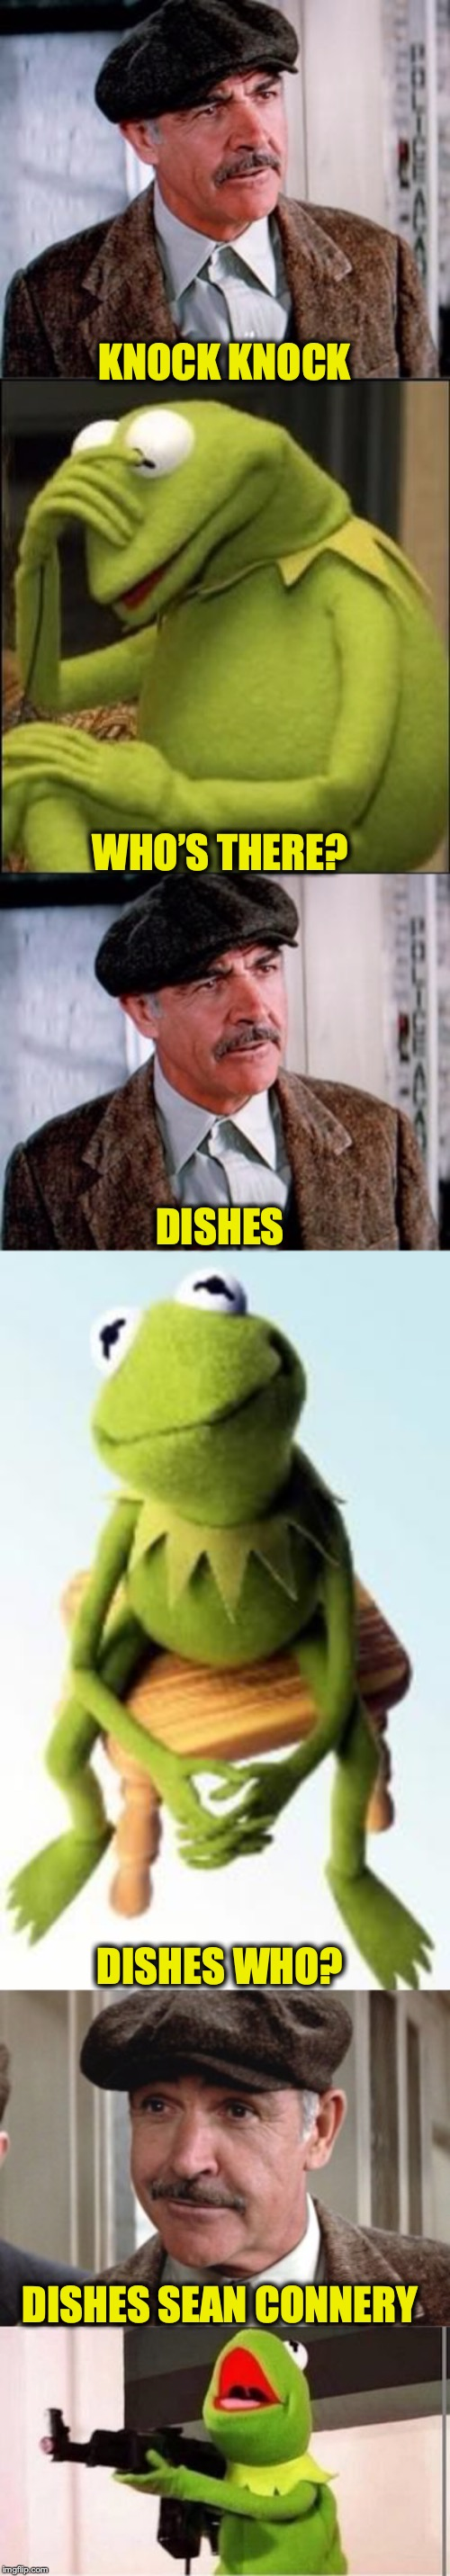 Knock Knock | KNOCK KNOCK WHO'S THERE? DISHES DISHES WHO? DISHES SEAN CONNERY | image tagged in knock knock,sean connery  kermit,funny meme | made w/ Imgflip meme maker